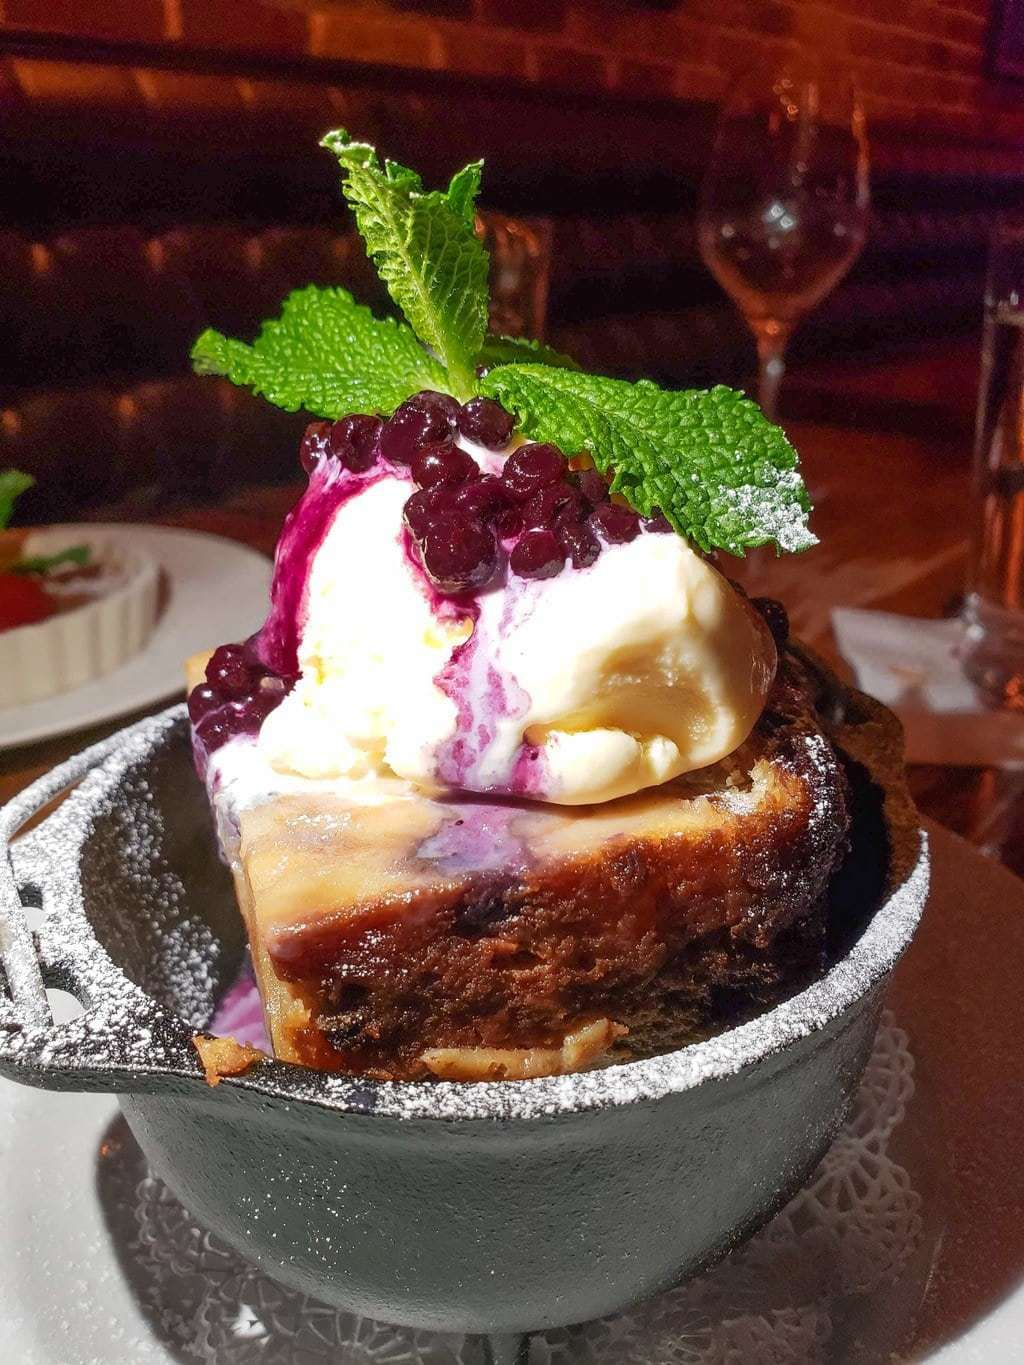 warm bread pudding, salt factory menu